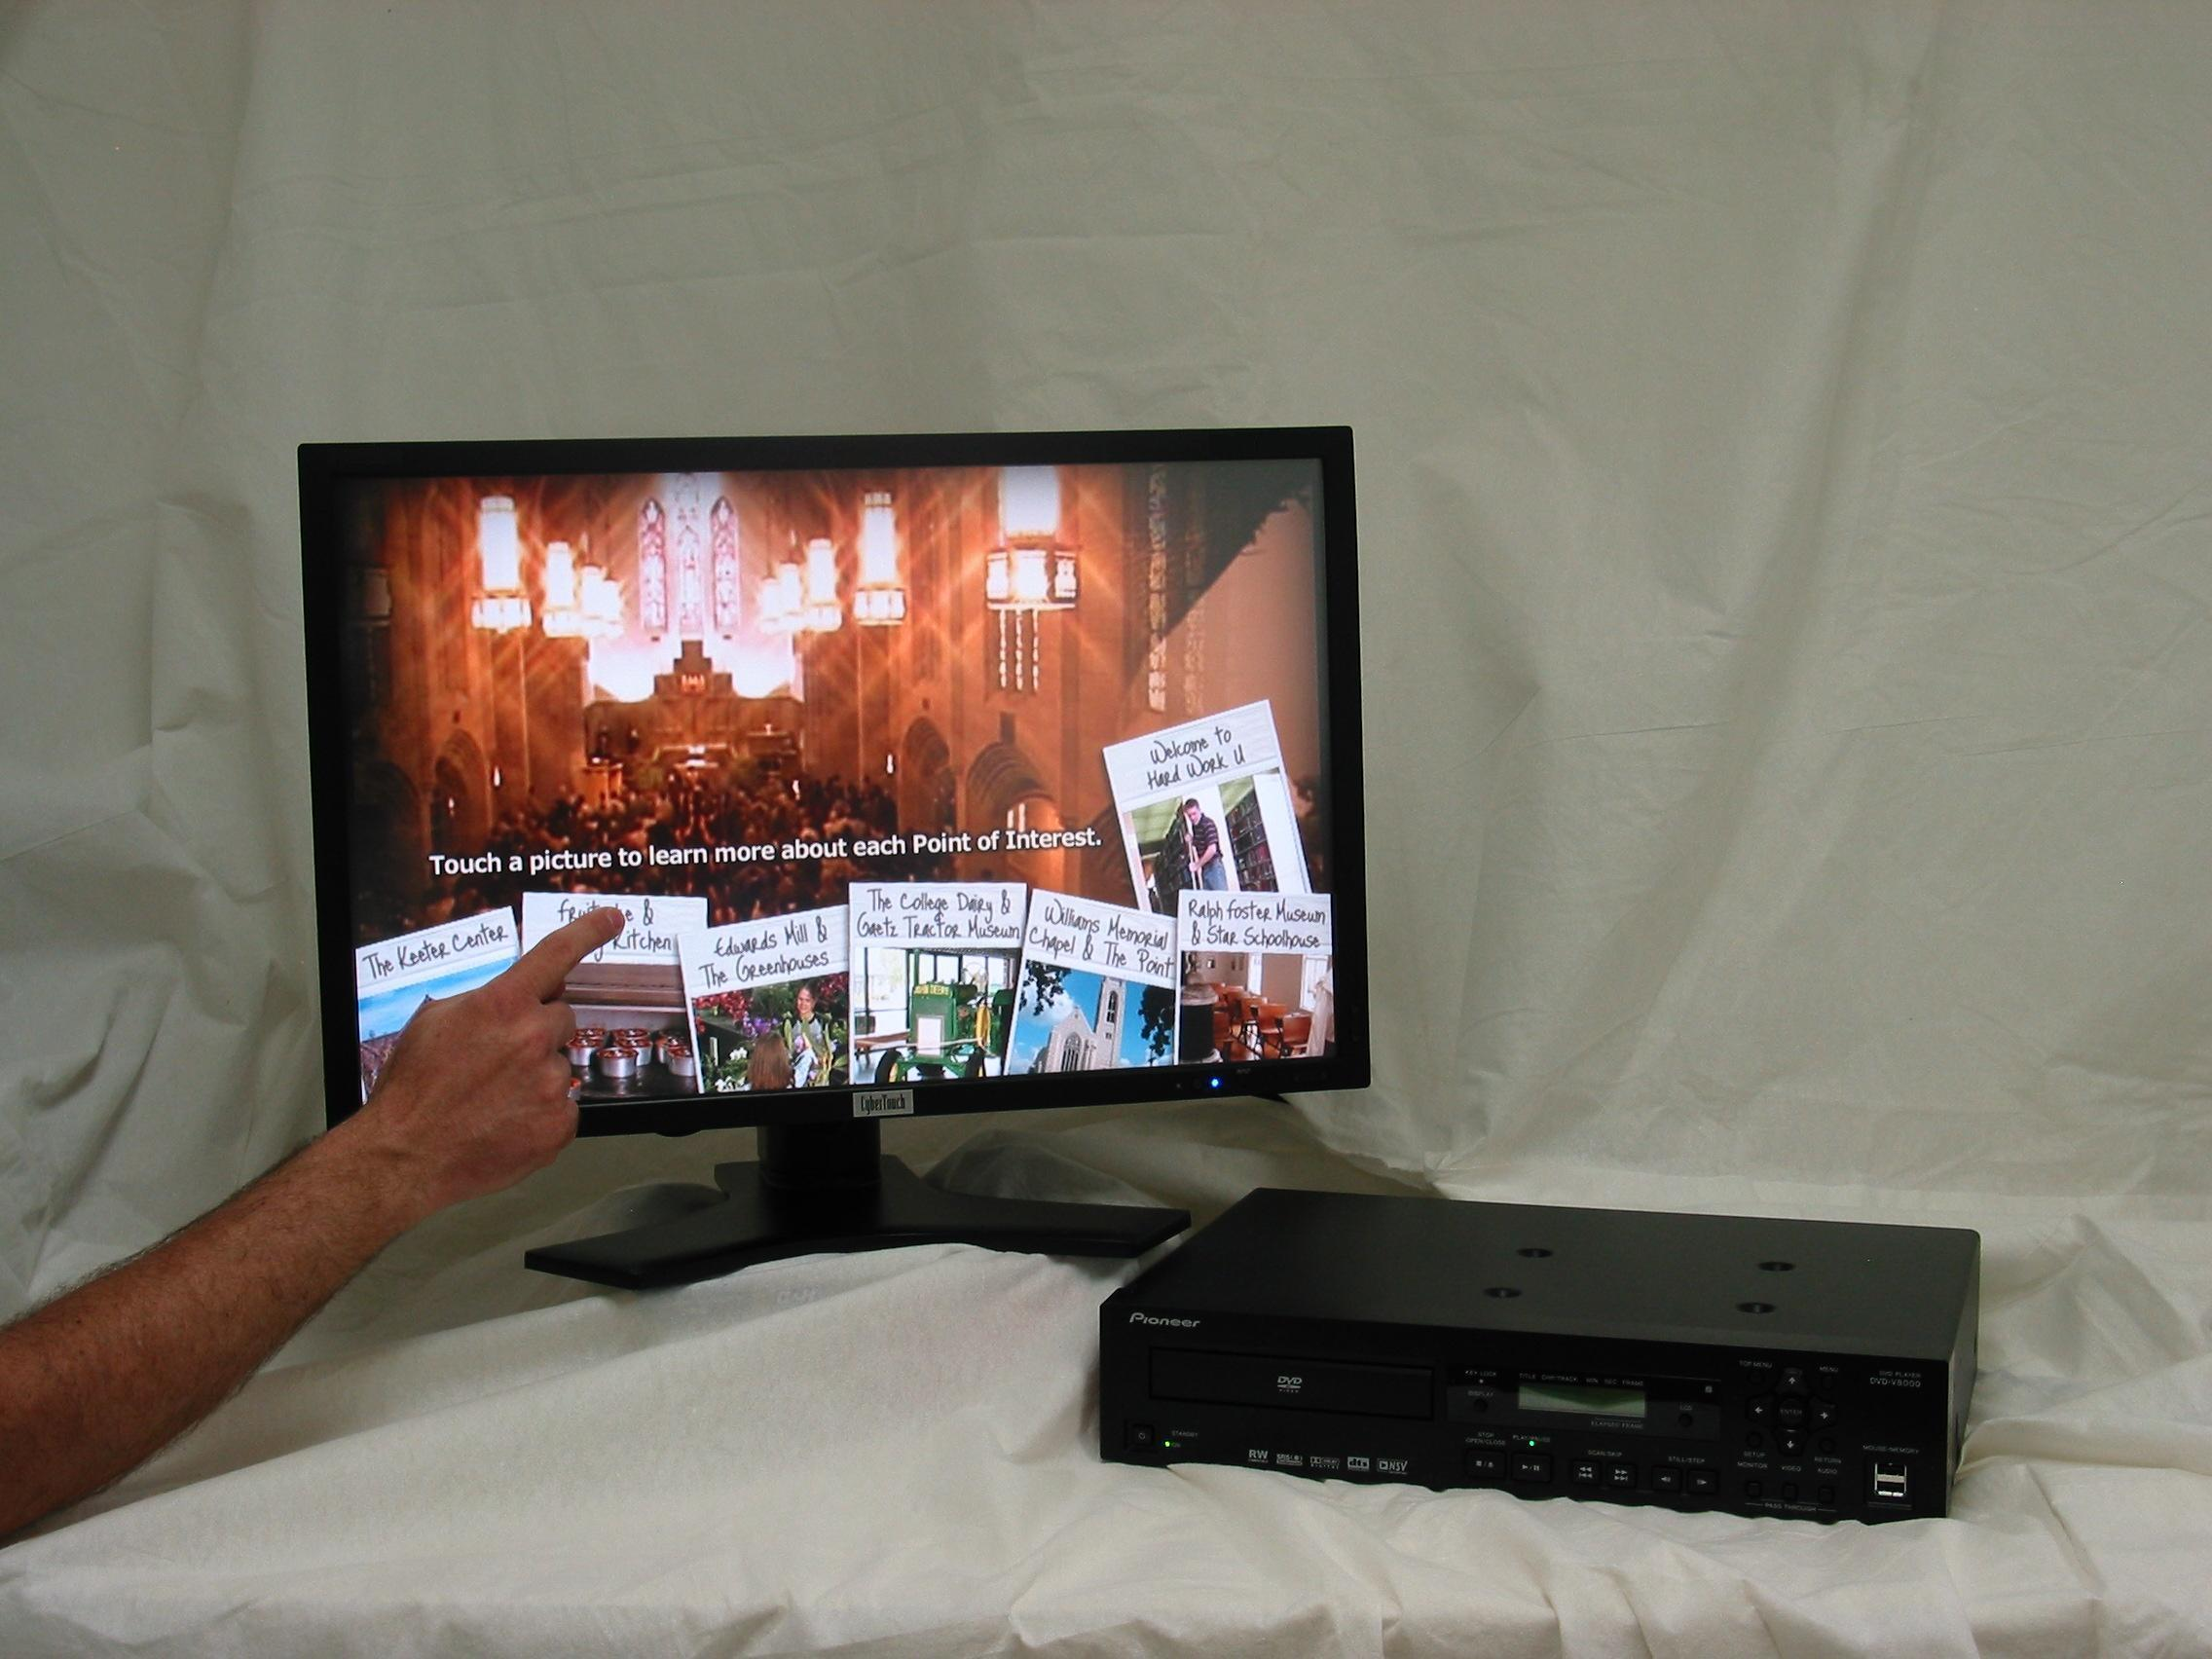 CyberTouch Announces New Bundle Package Series with Pioneer's Professional DVD-V8000